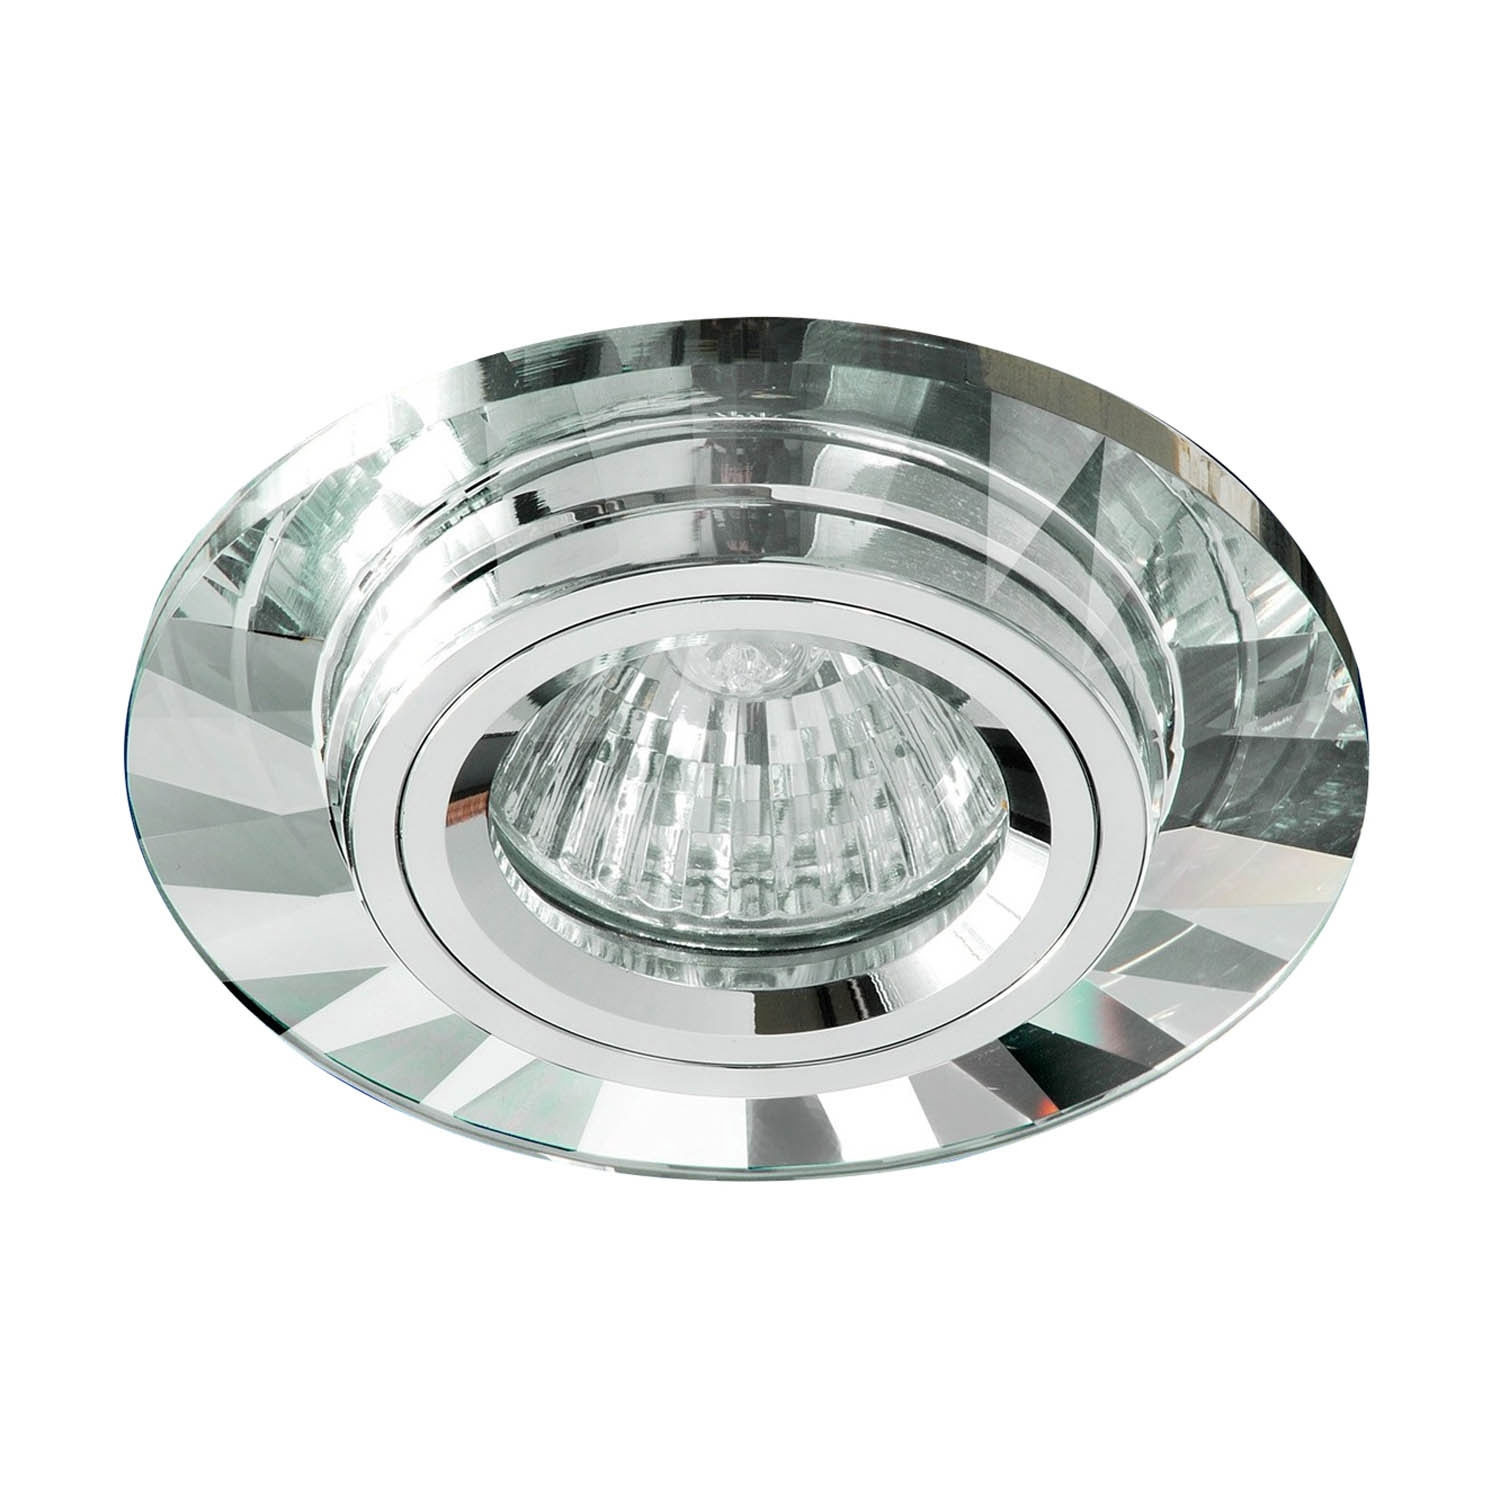 Focos Empotrables Led Techo Lujo Focos Empotrables Techo Led Empotrable Downlight Led Of 49  Perfecto Focos Empotrables Led Techo